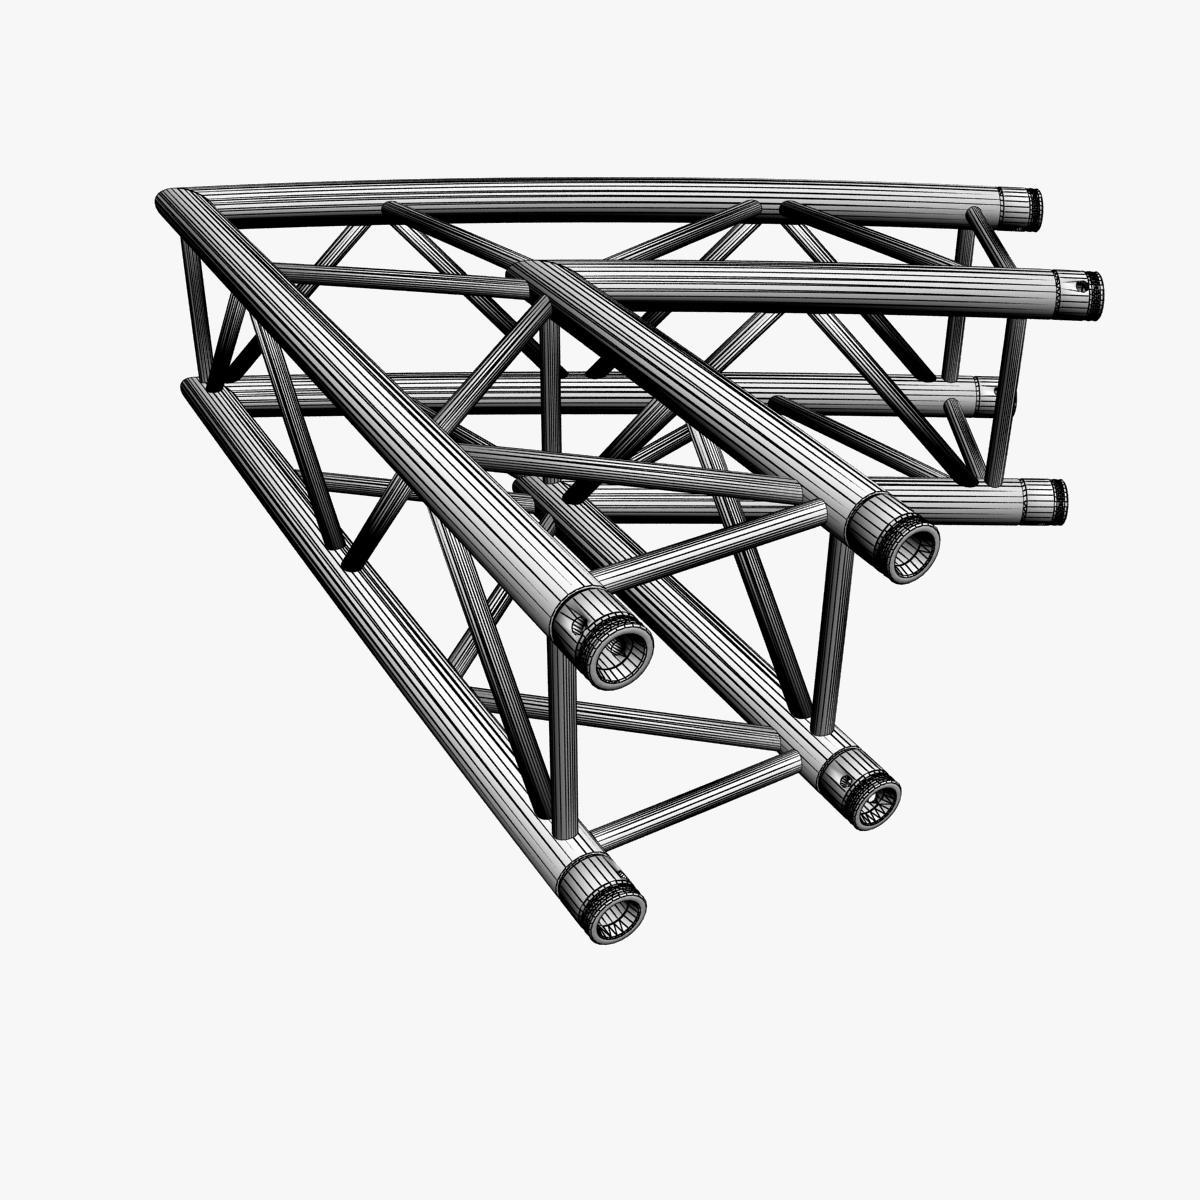 square truss standard (collection 24 modular) 3d model 3ds max dxf fbx c4d dae  texture obj 216357